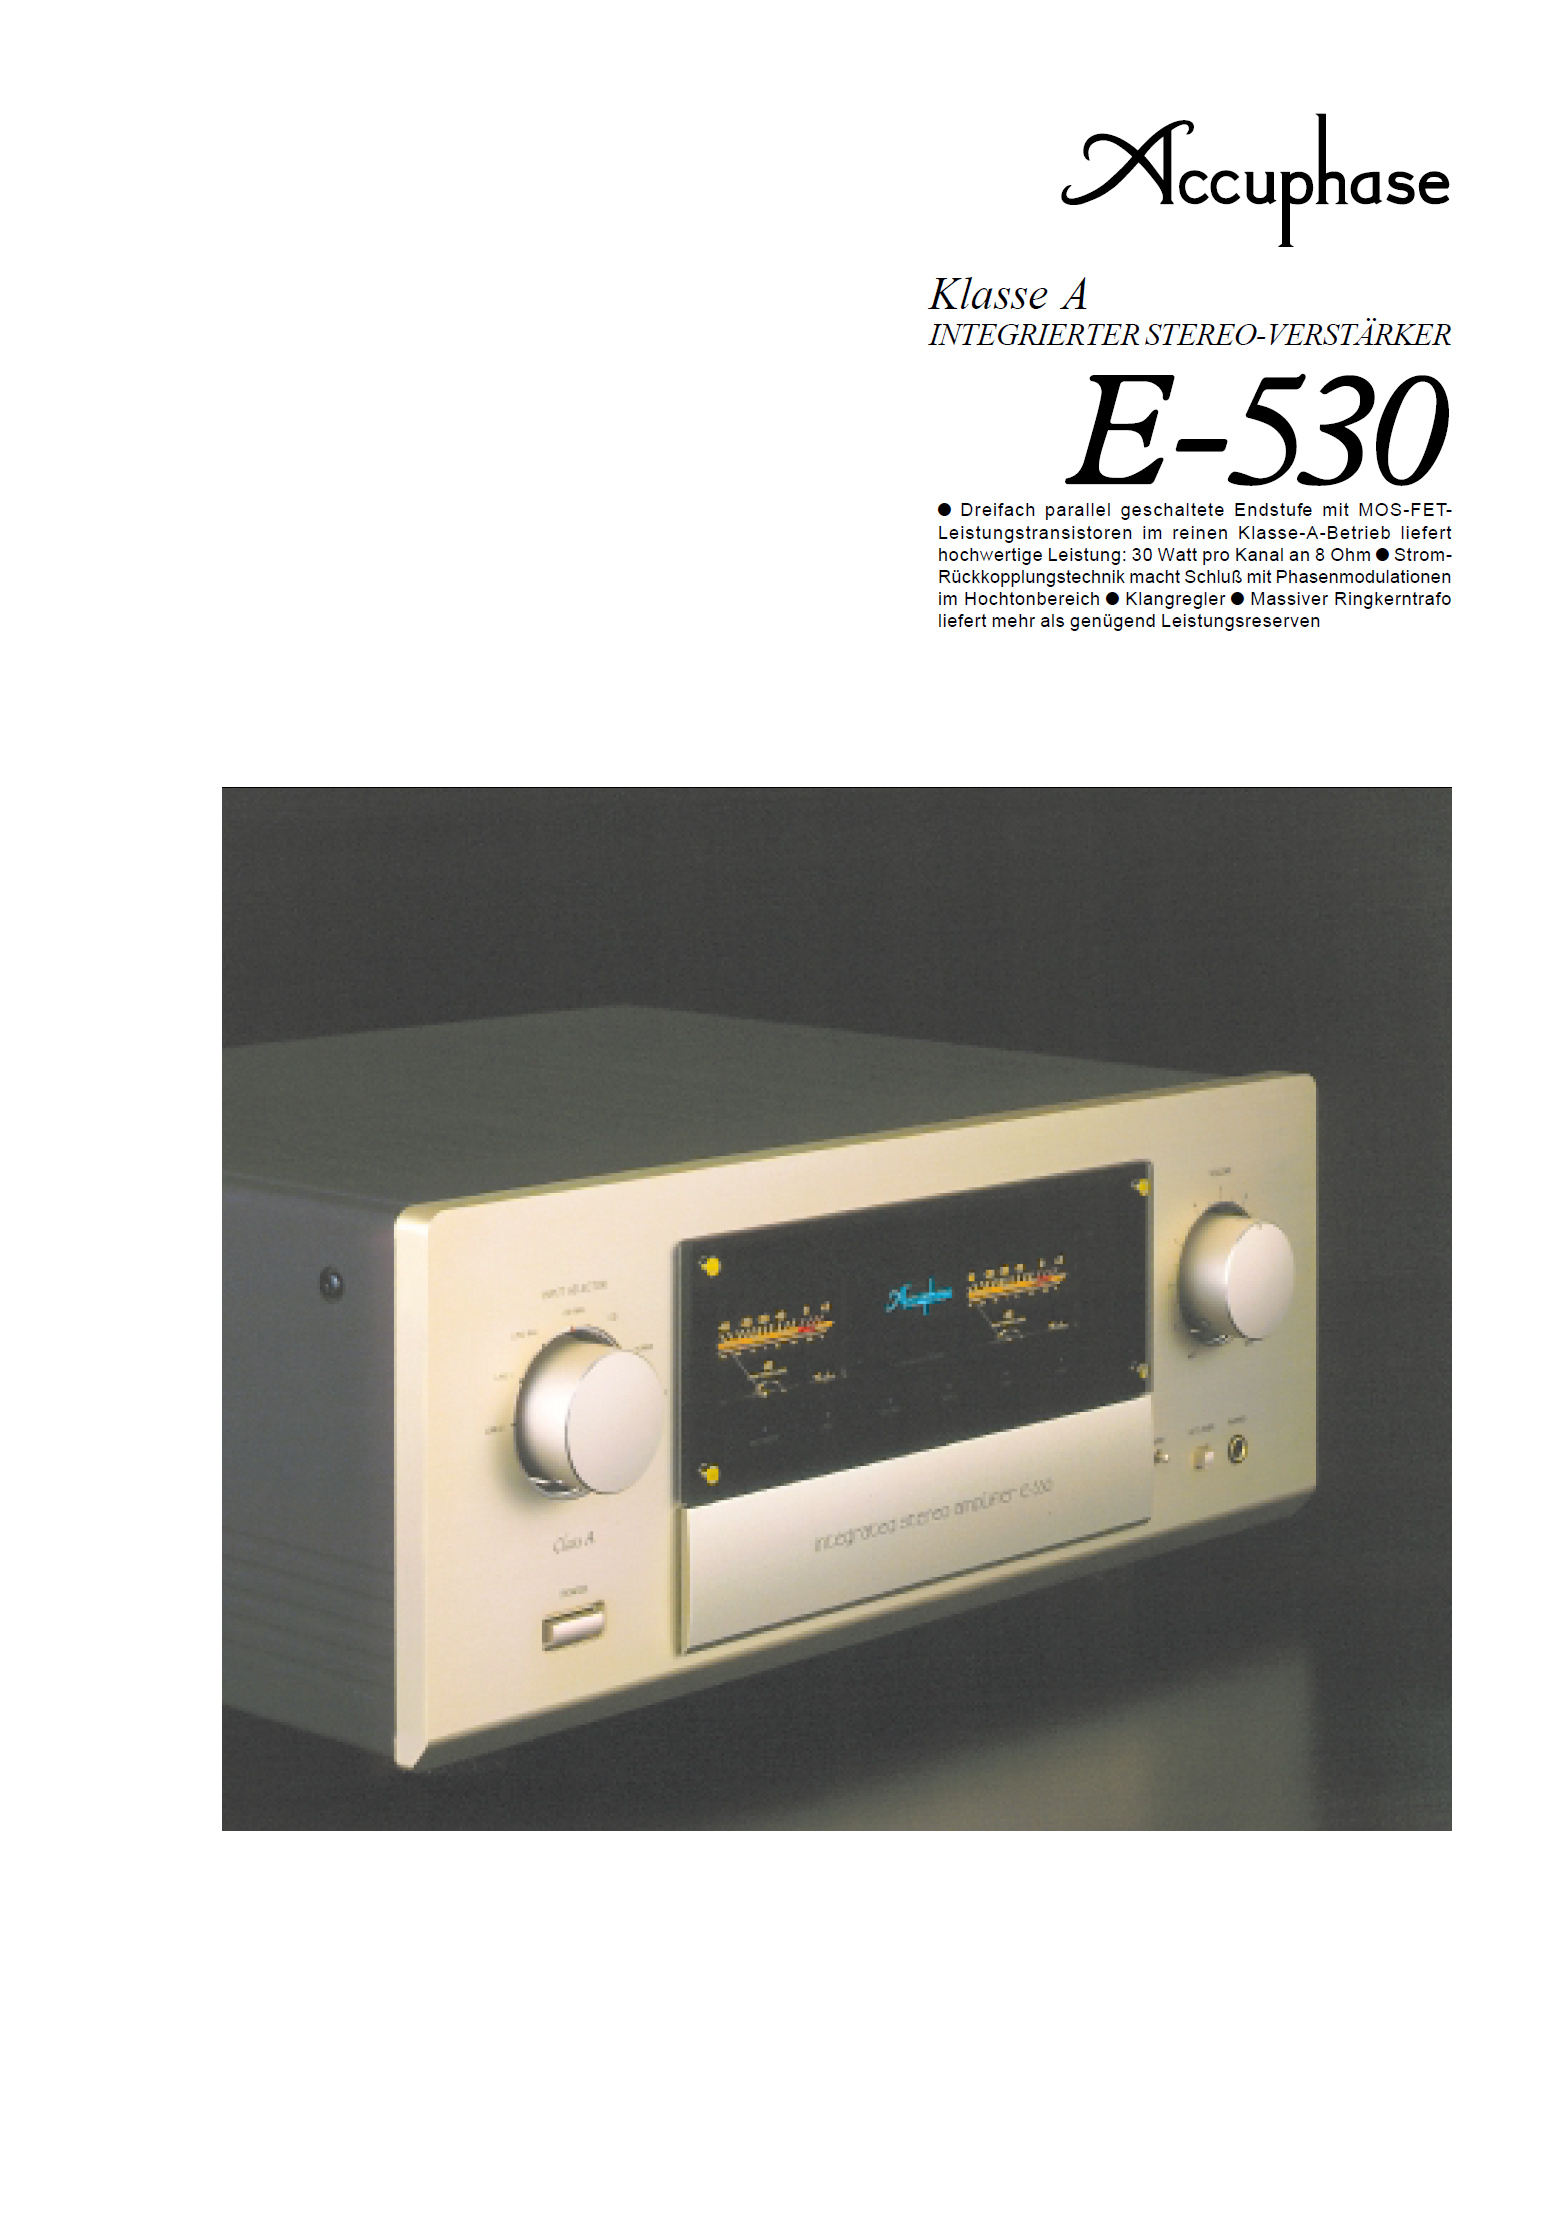 Accuphase E-530-Prospekt-1.jpg